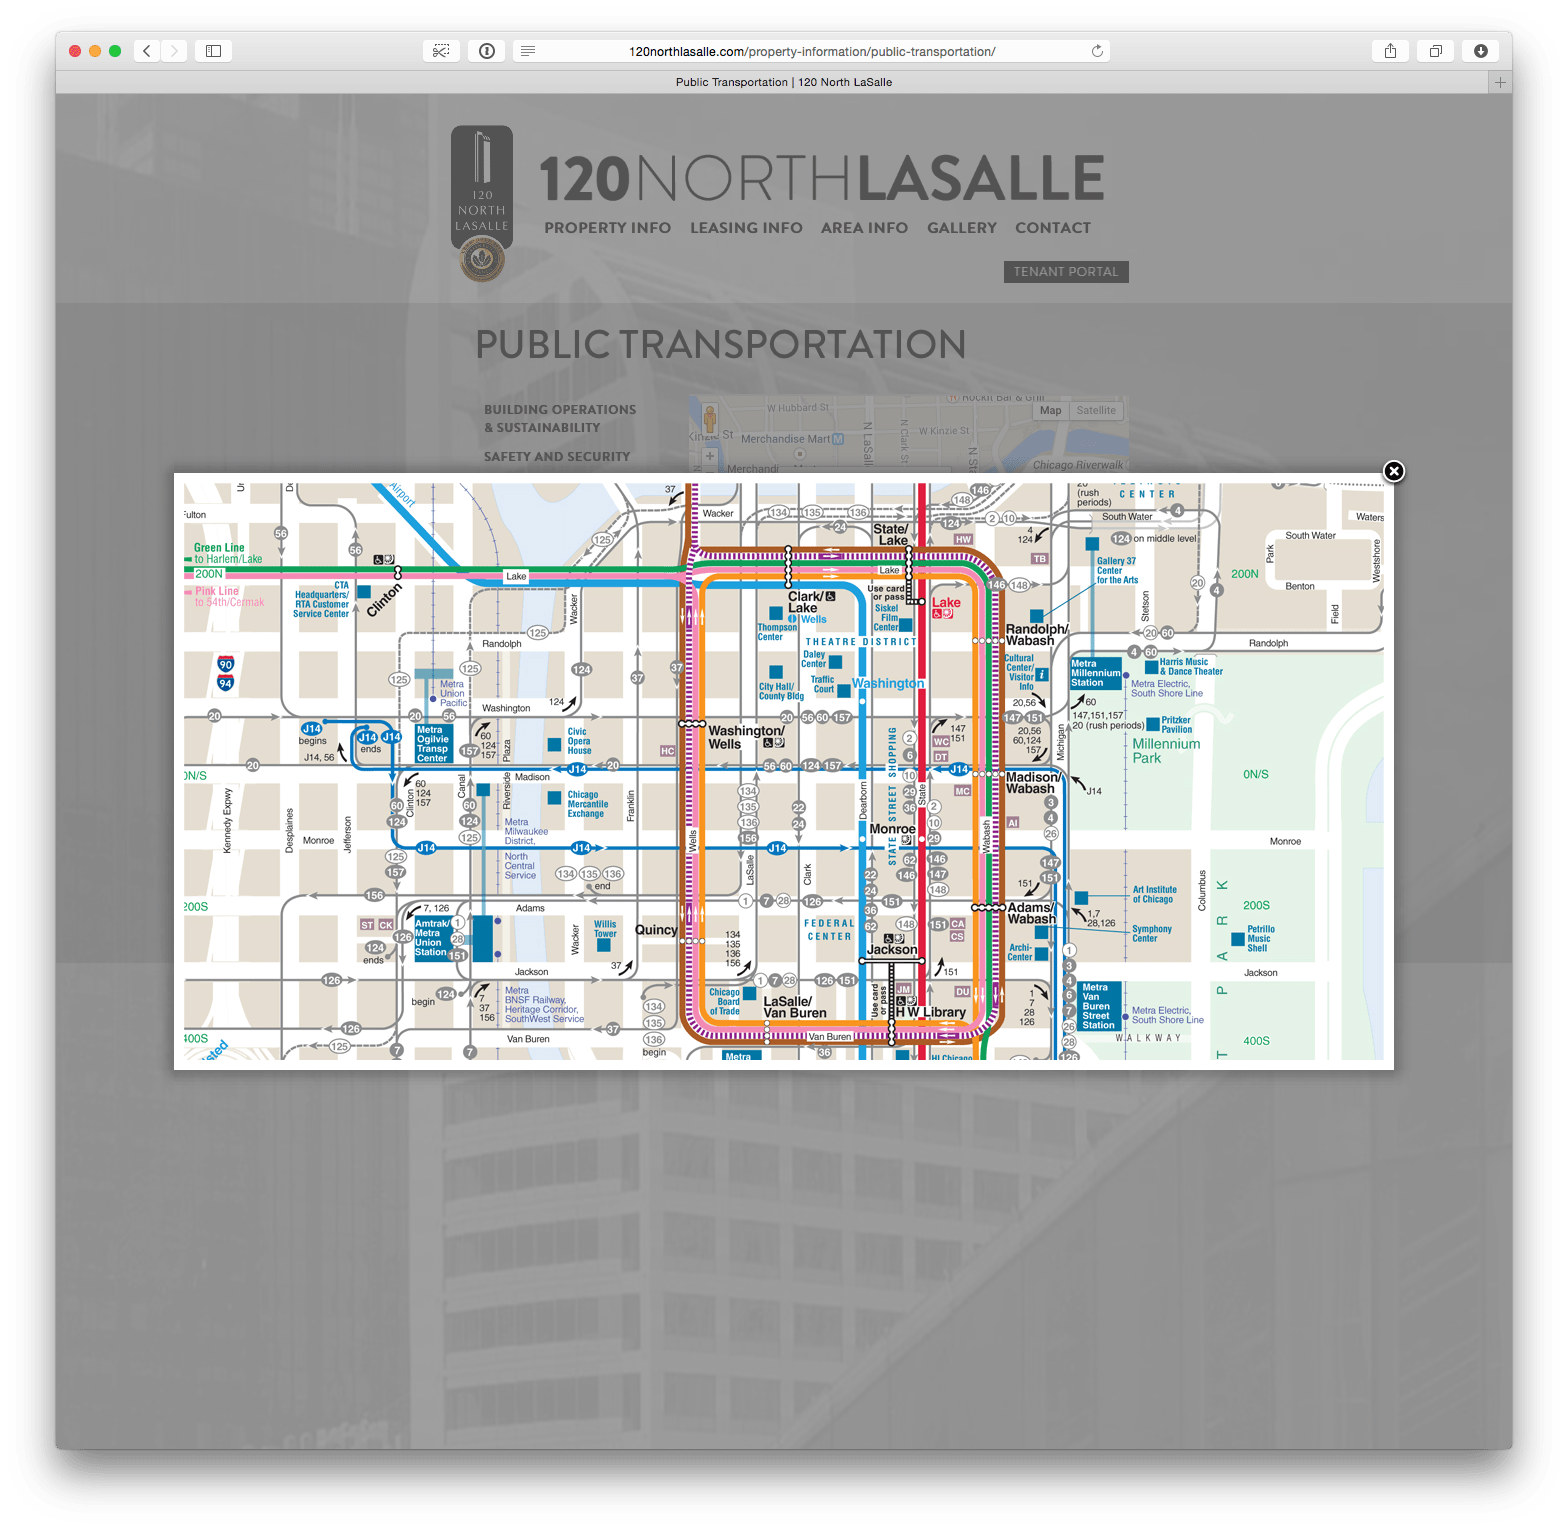 120NorthLasalle.com MTA Map View